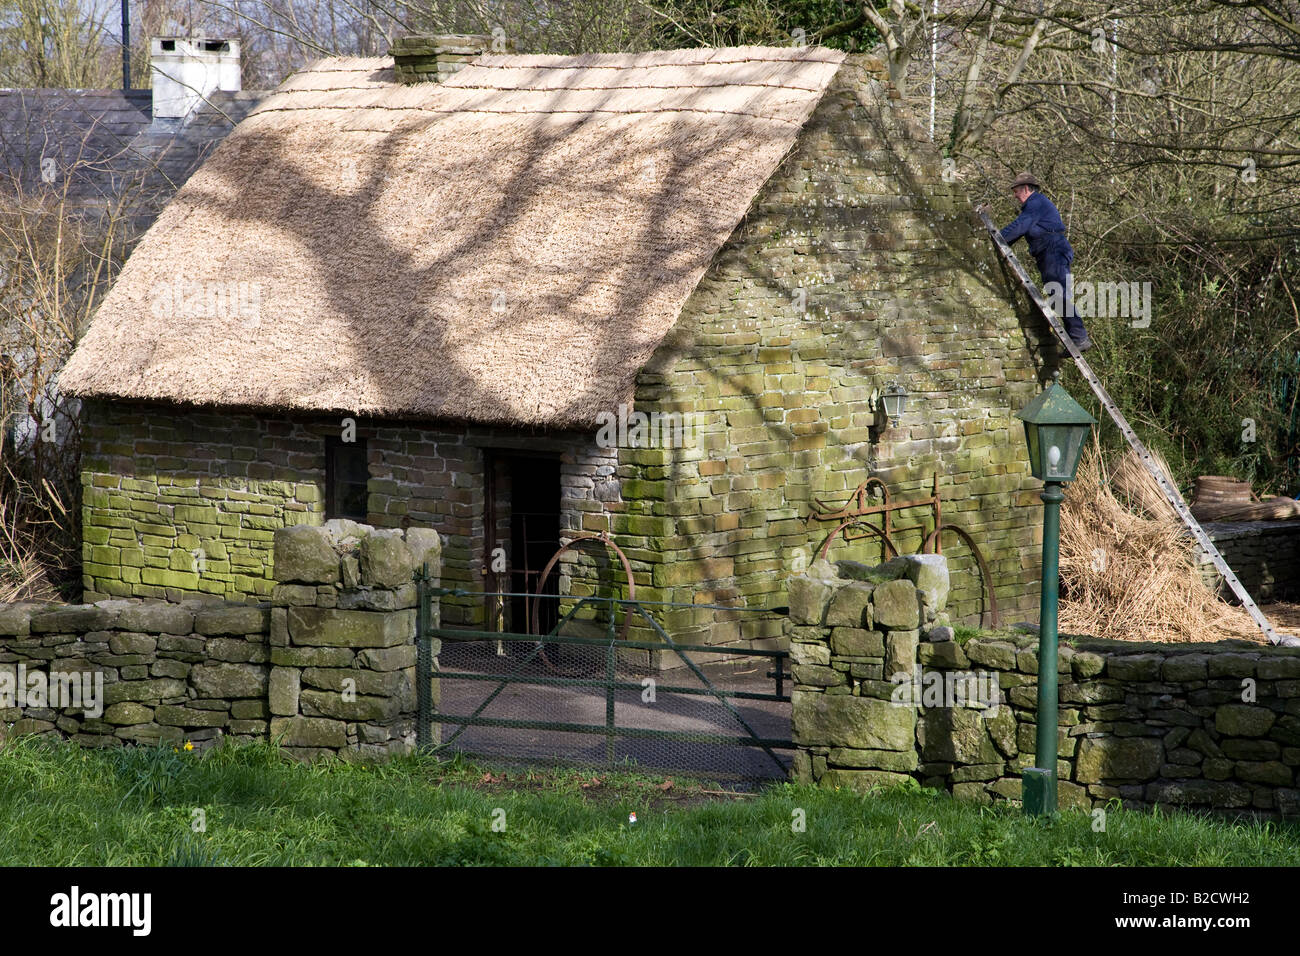 Irish Cottage with thatched roof at Bunratty Folk Park, County Clare, Ireland - Stock Image